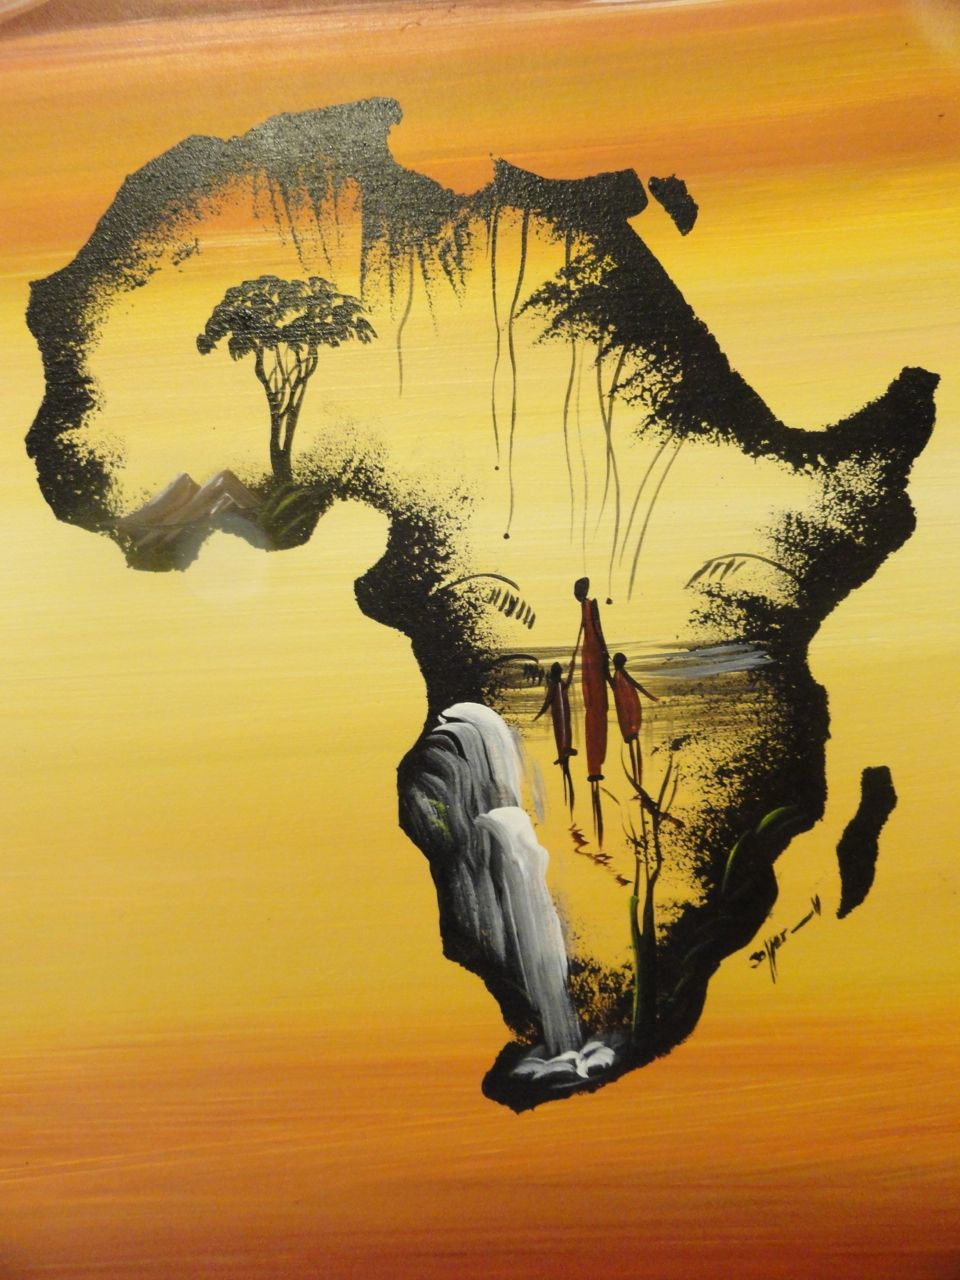 Beautiful, handpainted depiction of Africa. The main